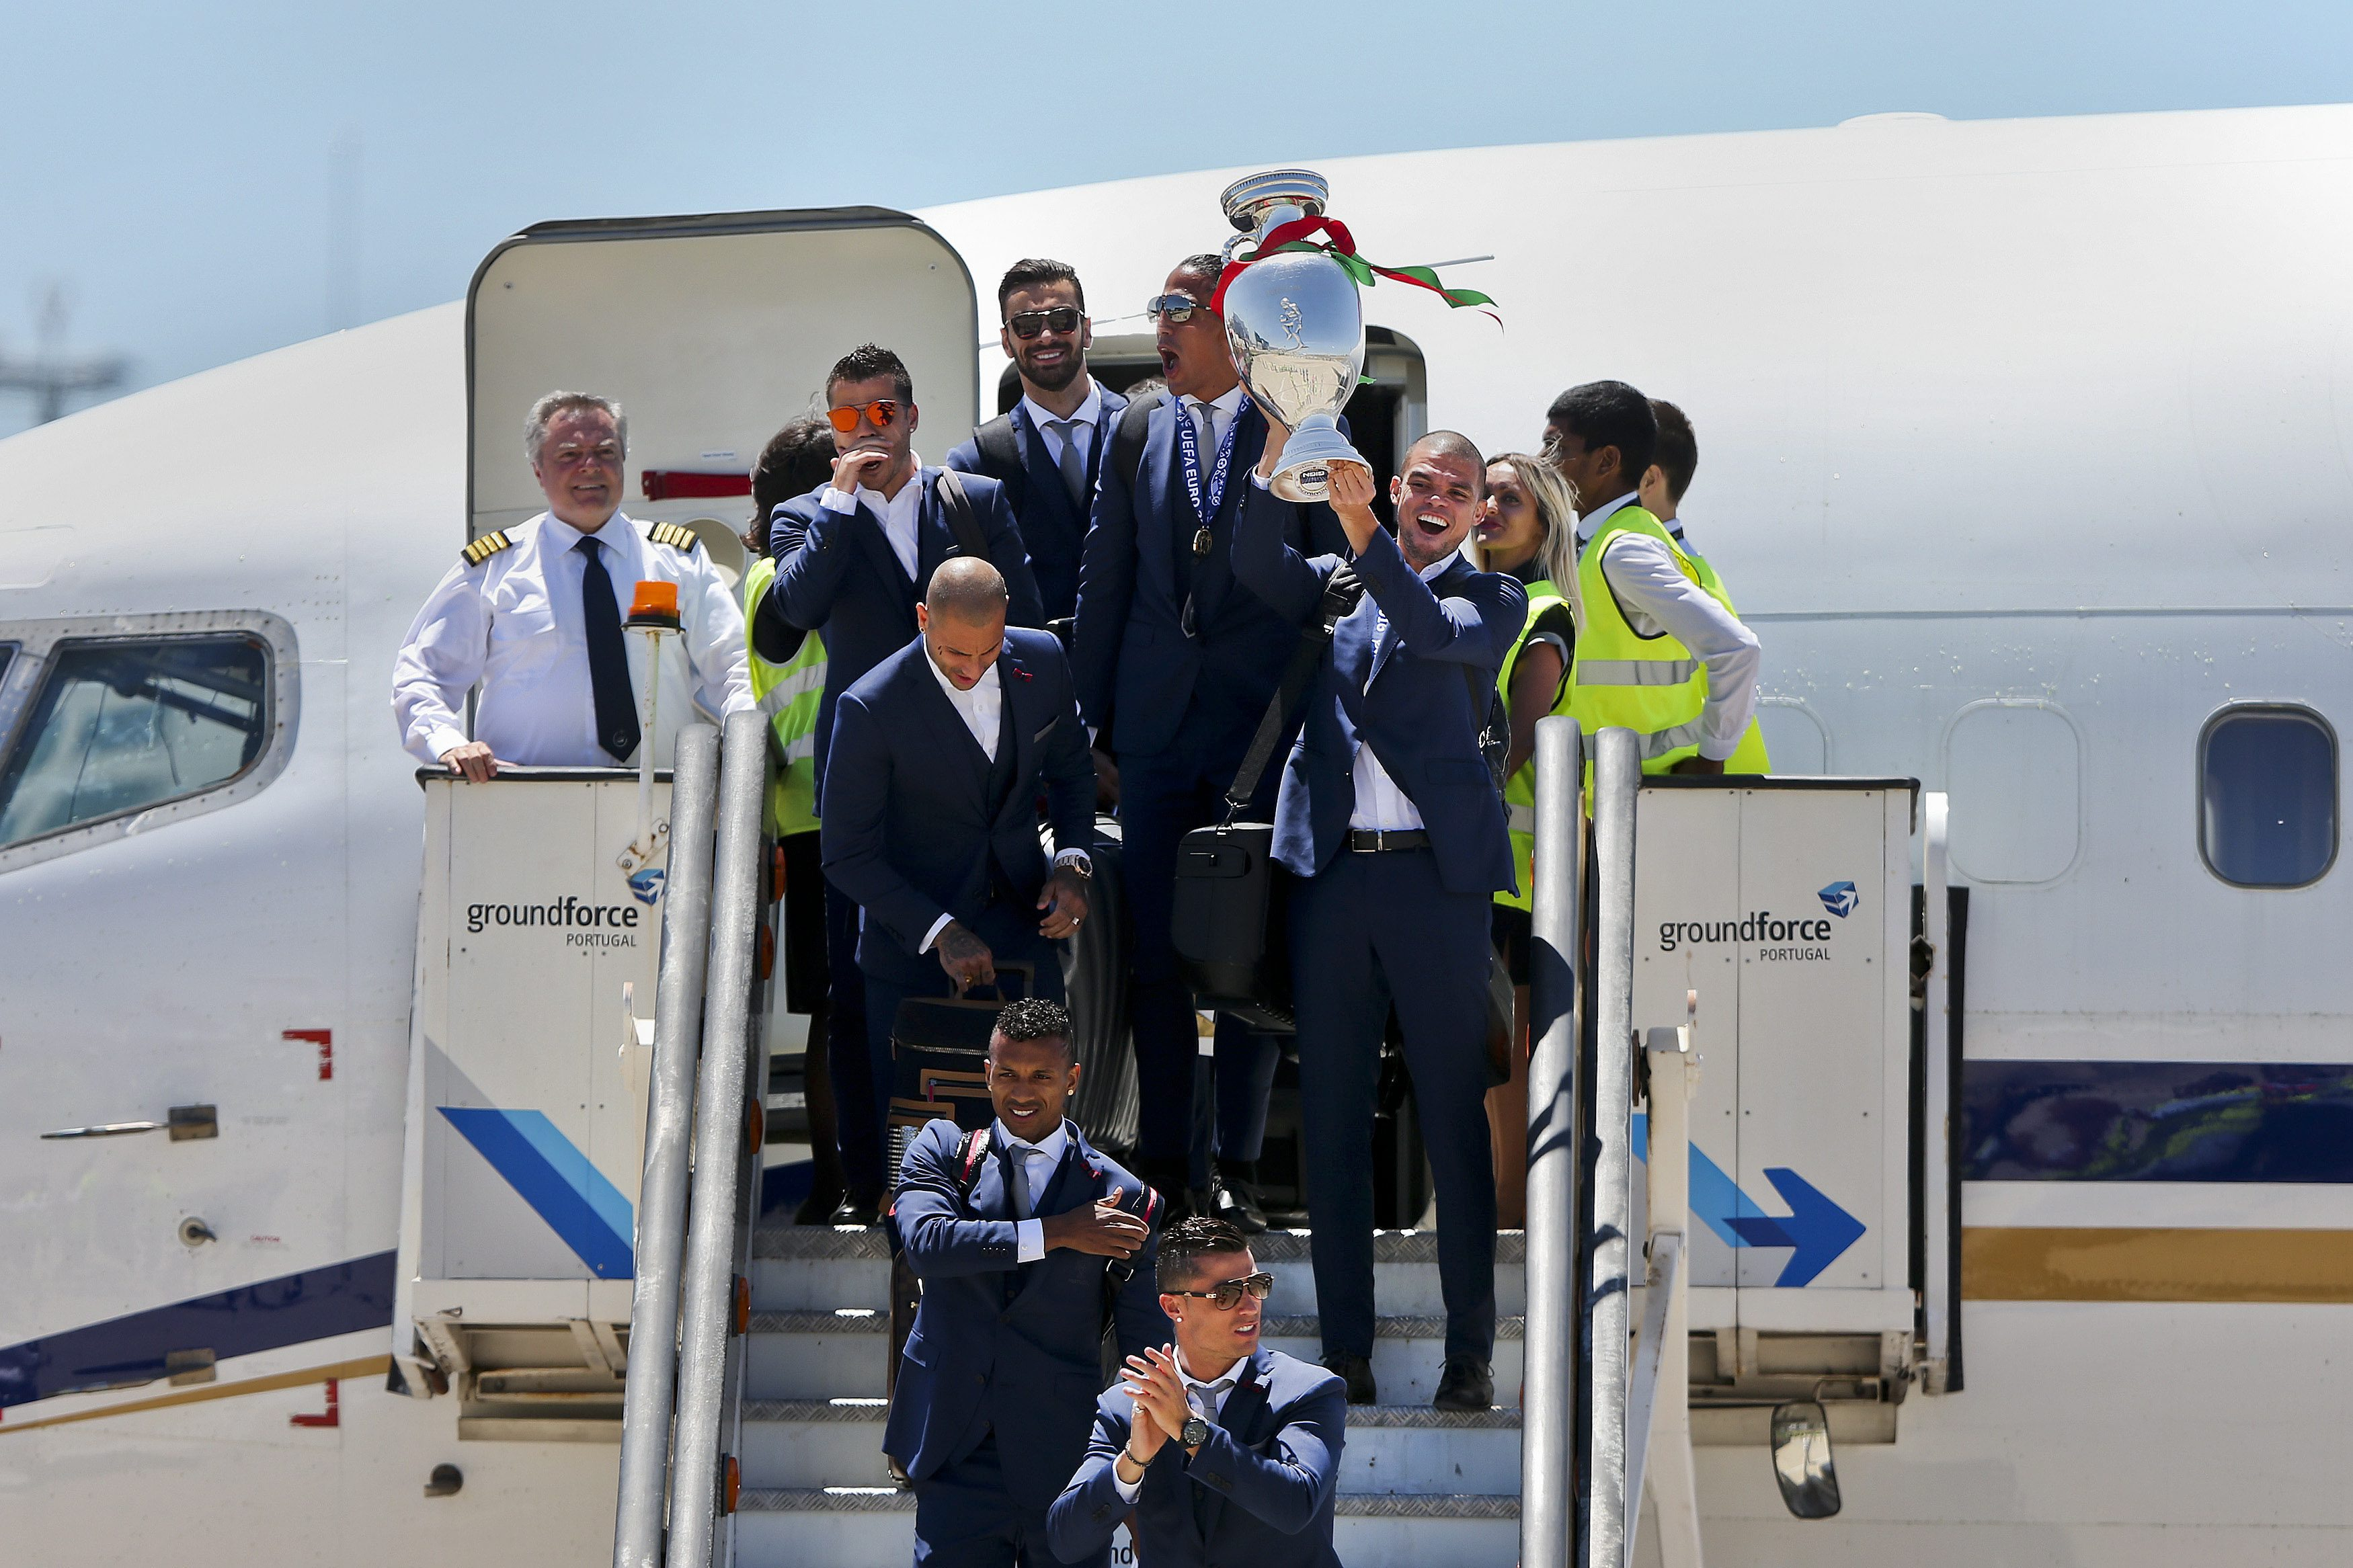 Defender Pepe lifts the cup as the victors leave the plane